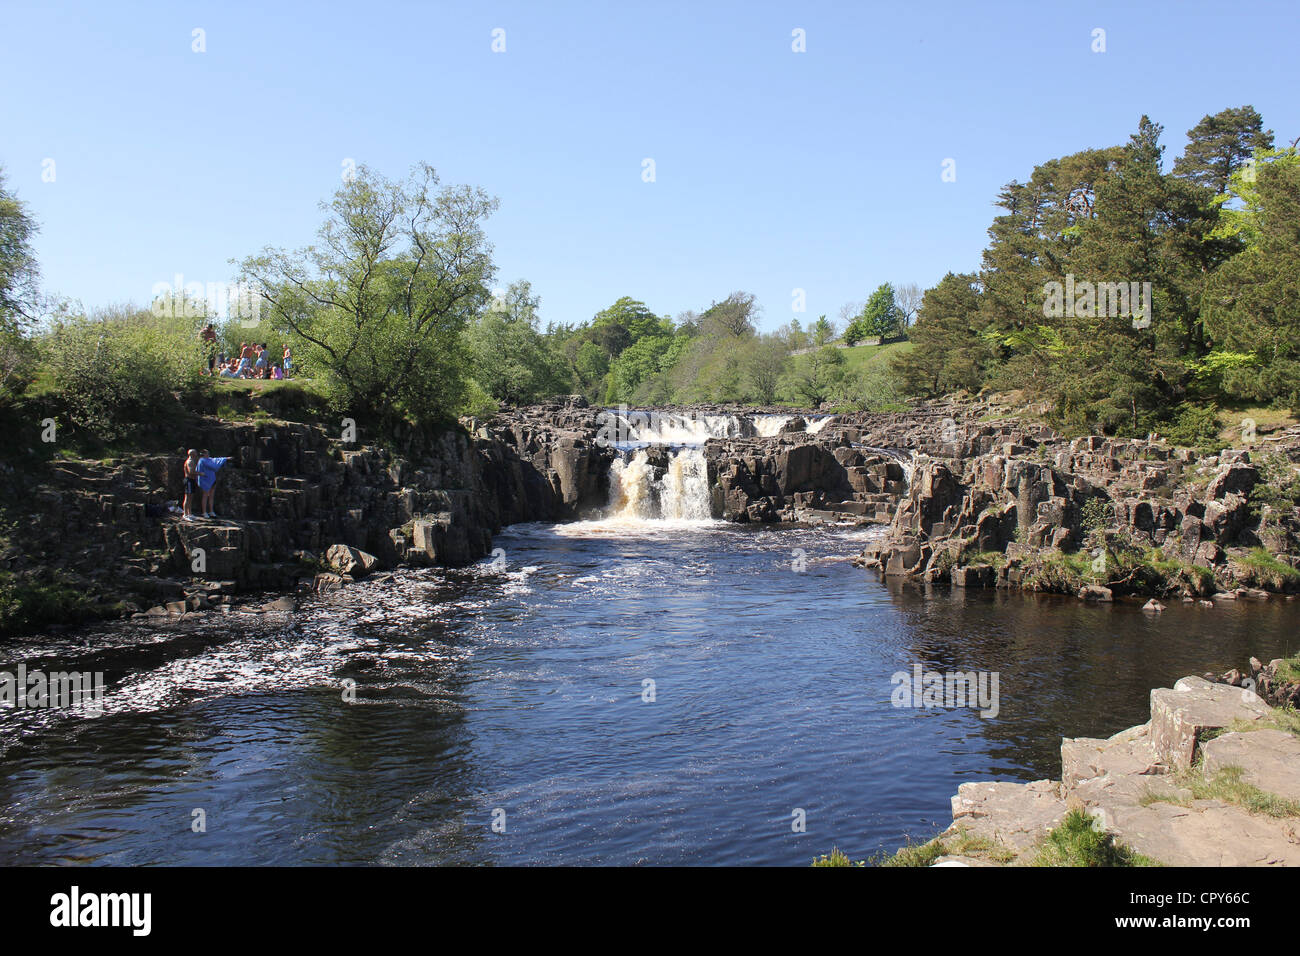 Teesdale scenes, North East England. 26th May 2012 - Low Force Waterfalls - about 1.1/4 mls downstream of High Force - Stock Image